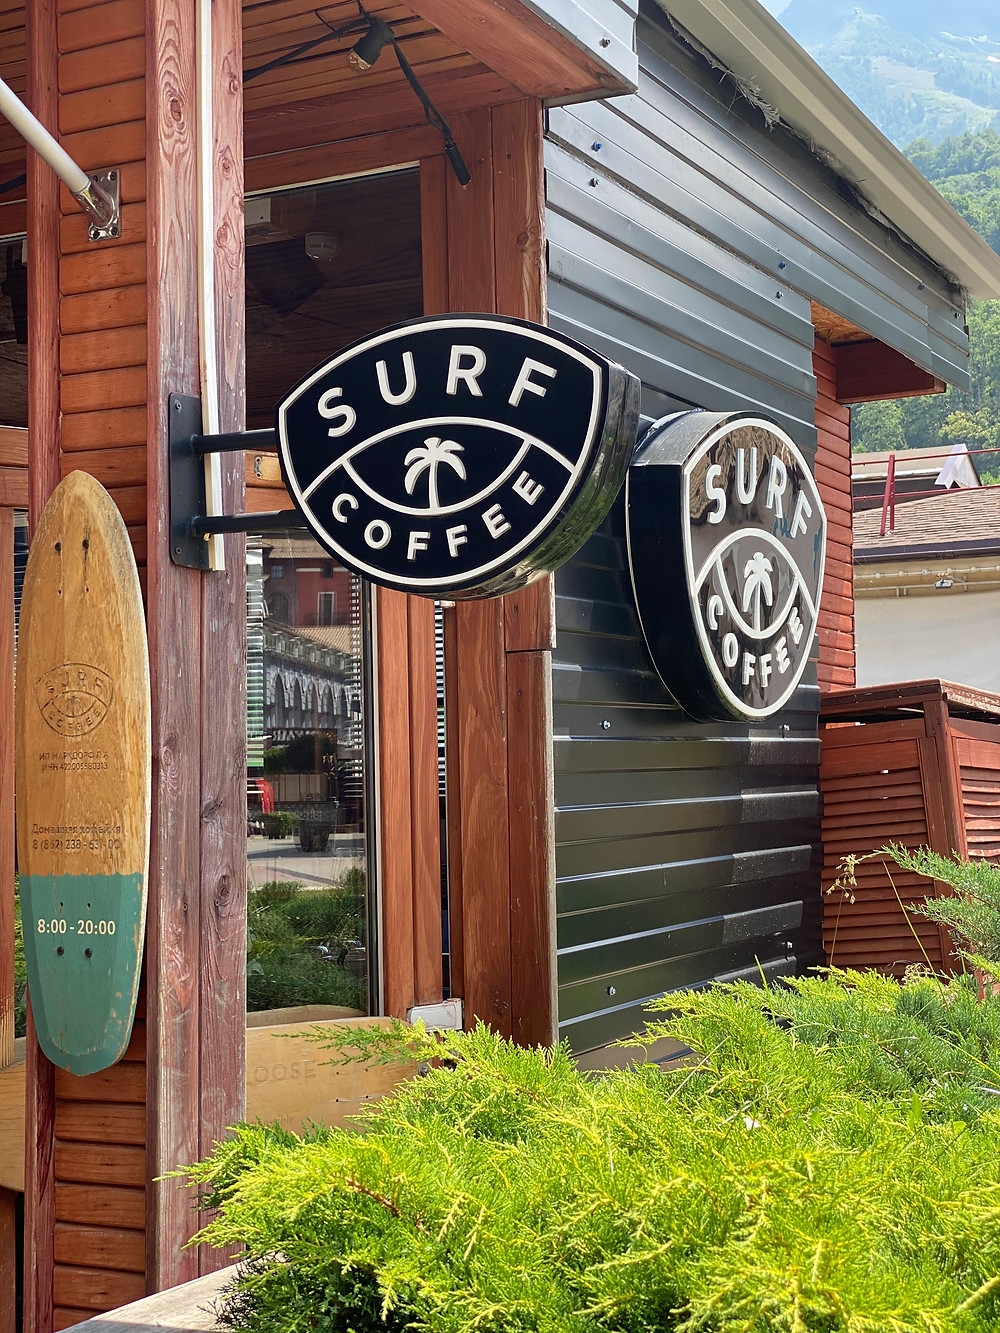 surf coffee upscale location